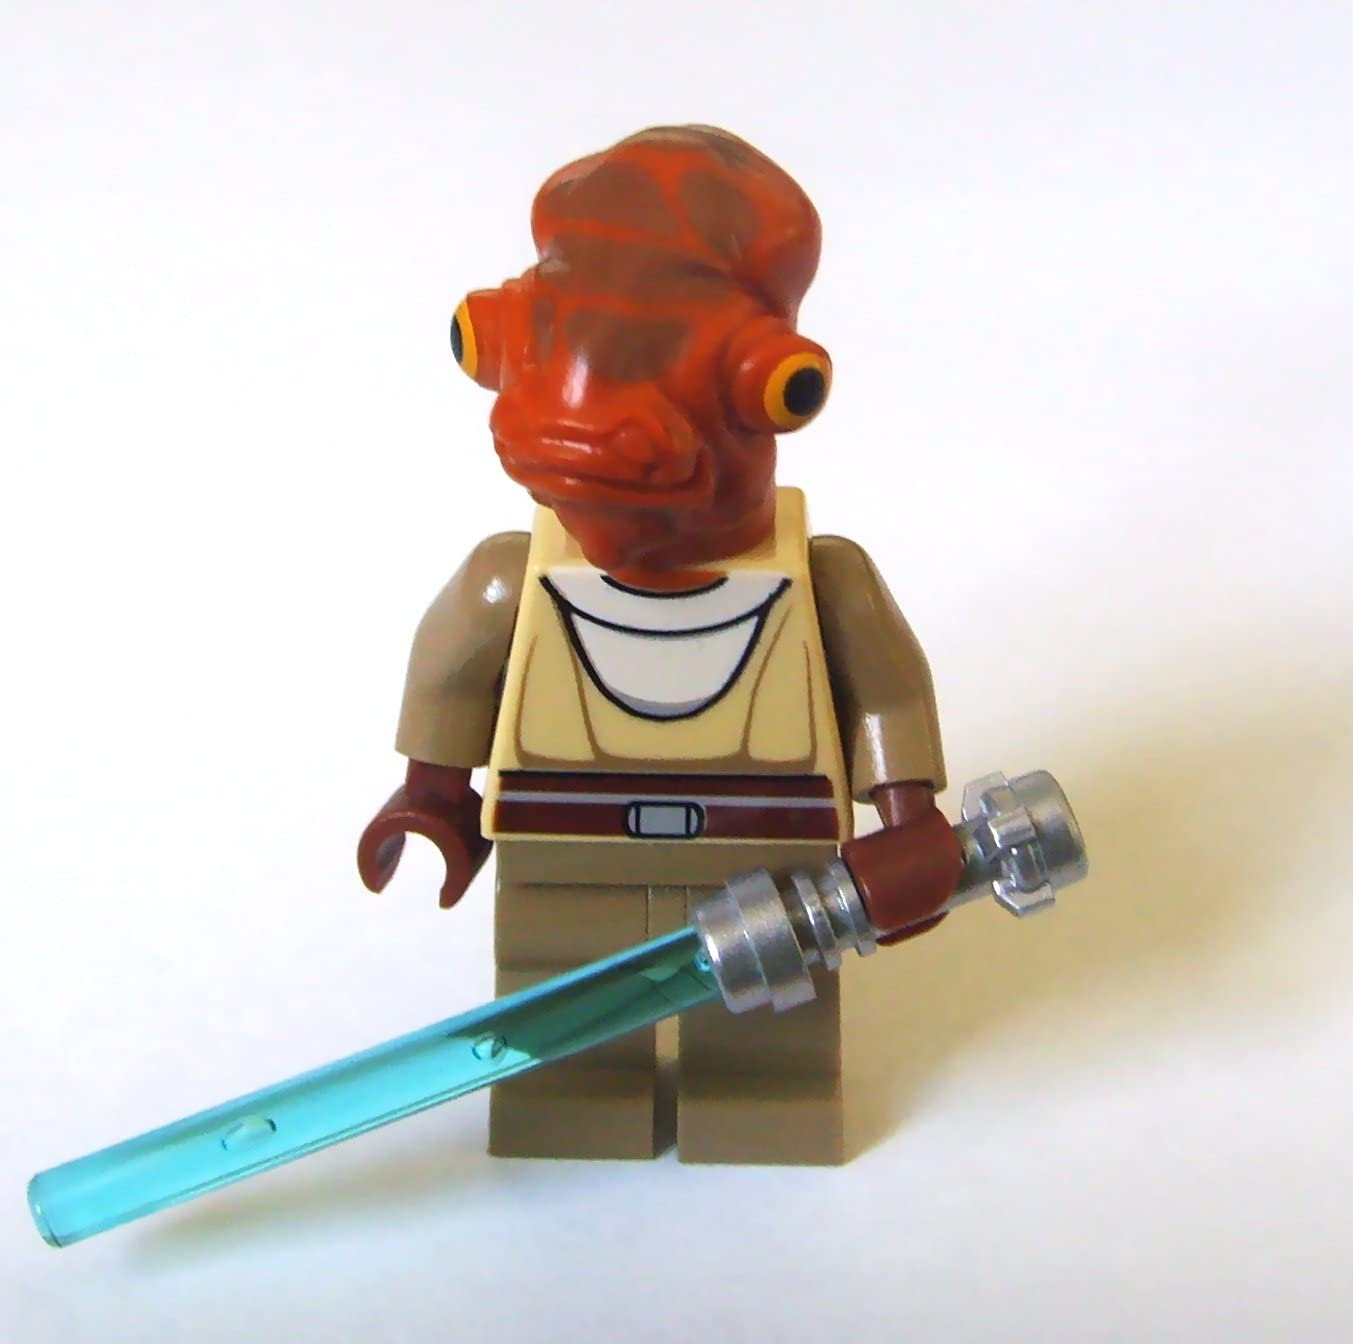 LEGO Star Wars The Clone Wars Nahdar Vebb Minifigure [Loose]